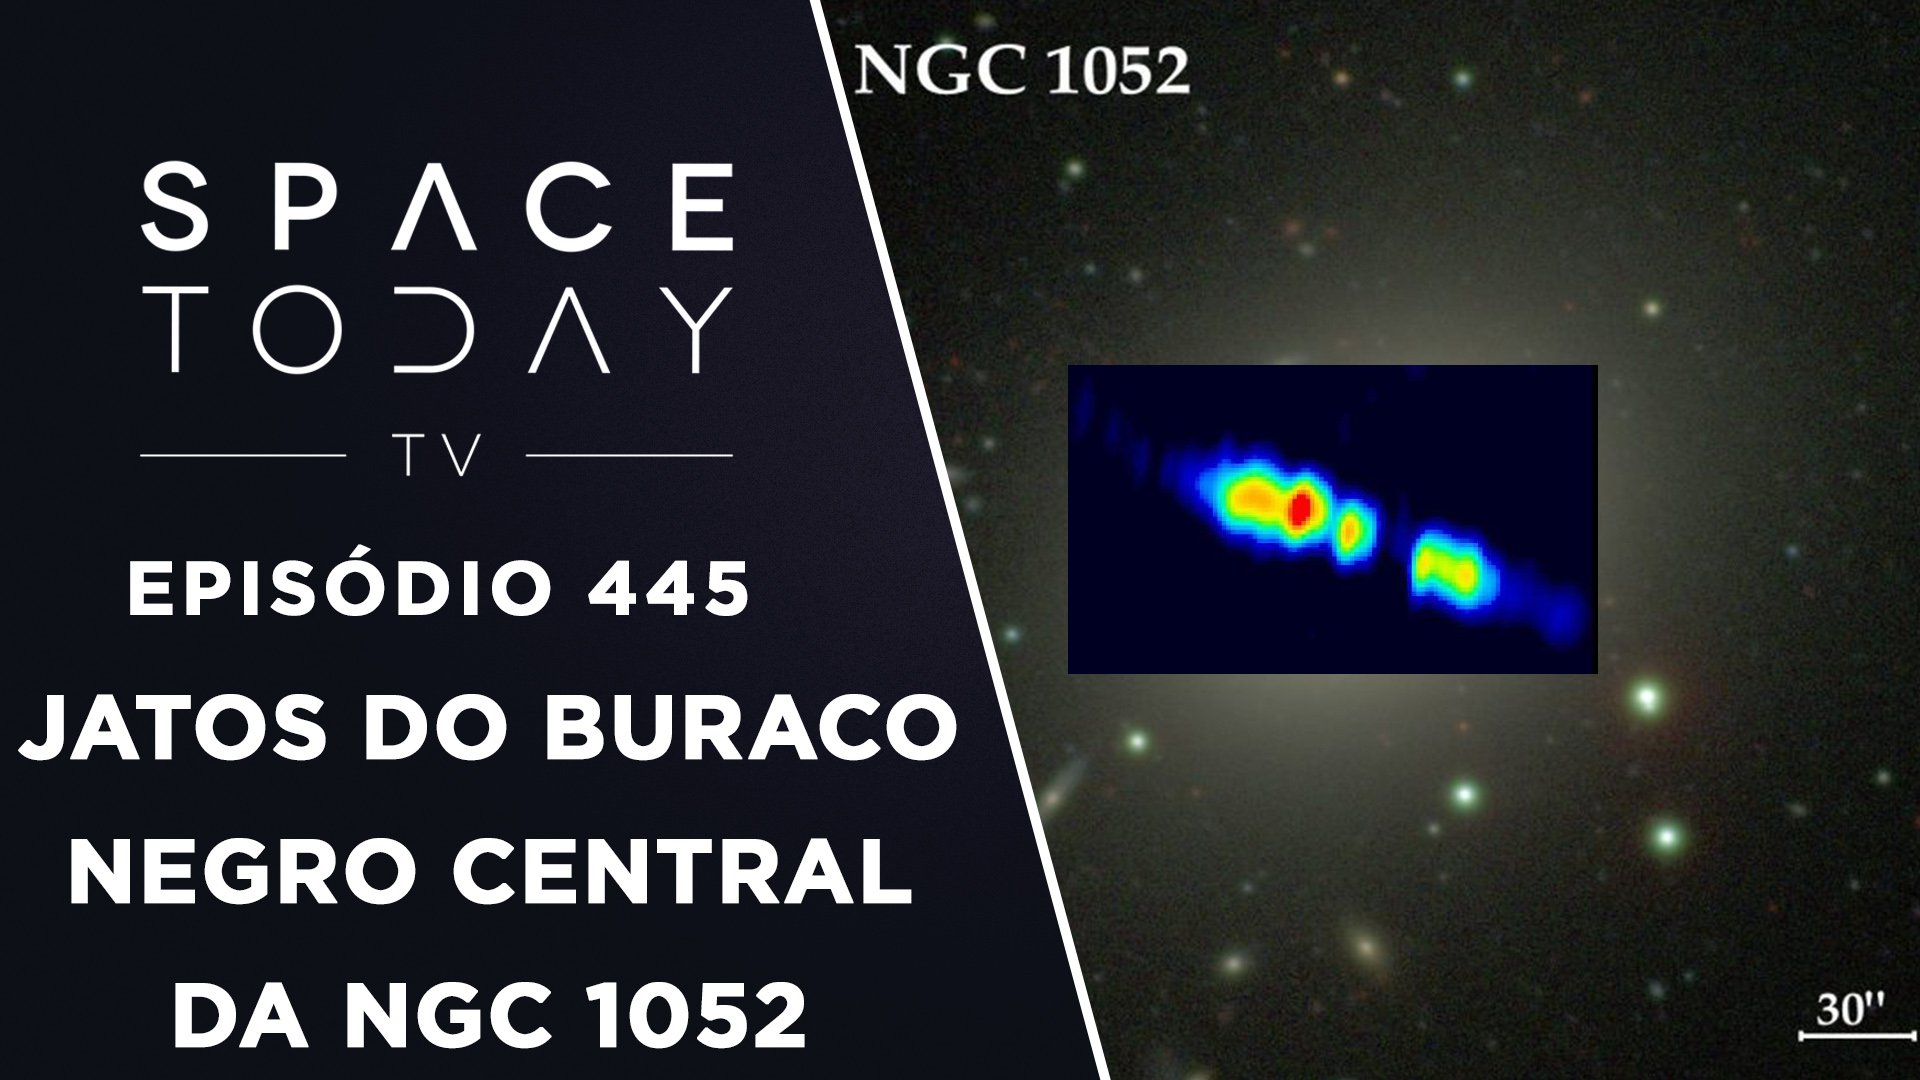 Jatos Relativísticos do Buraco Negro Central da NGC 1052 – Space Today TV Ep. 445